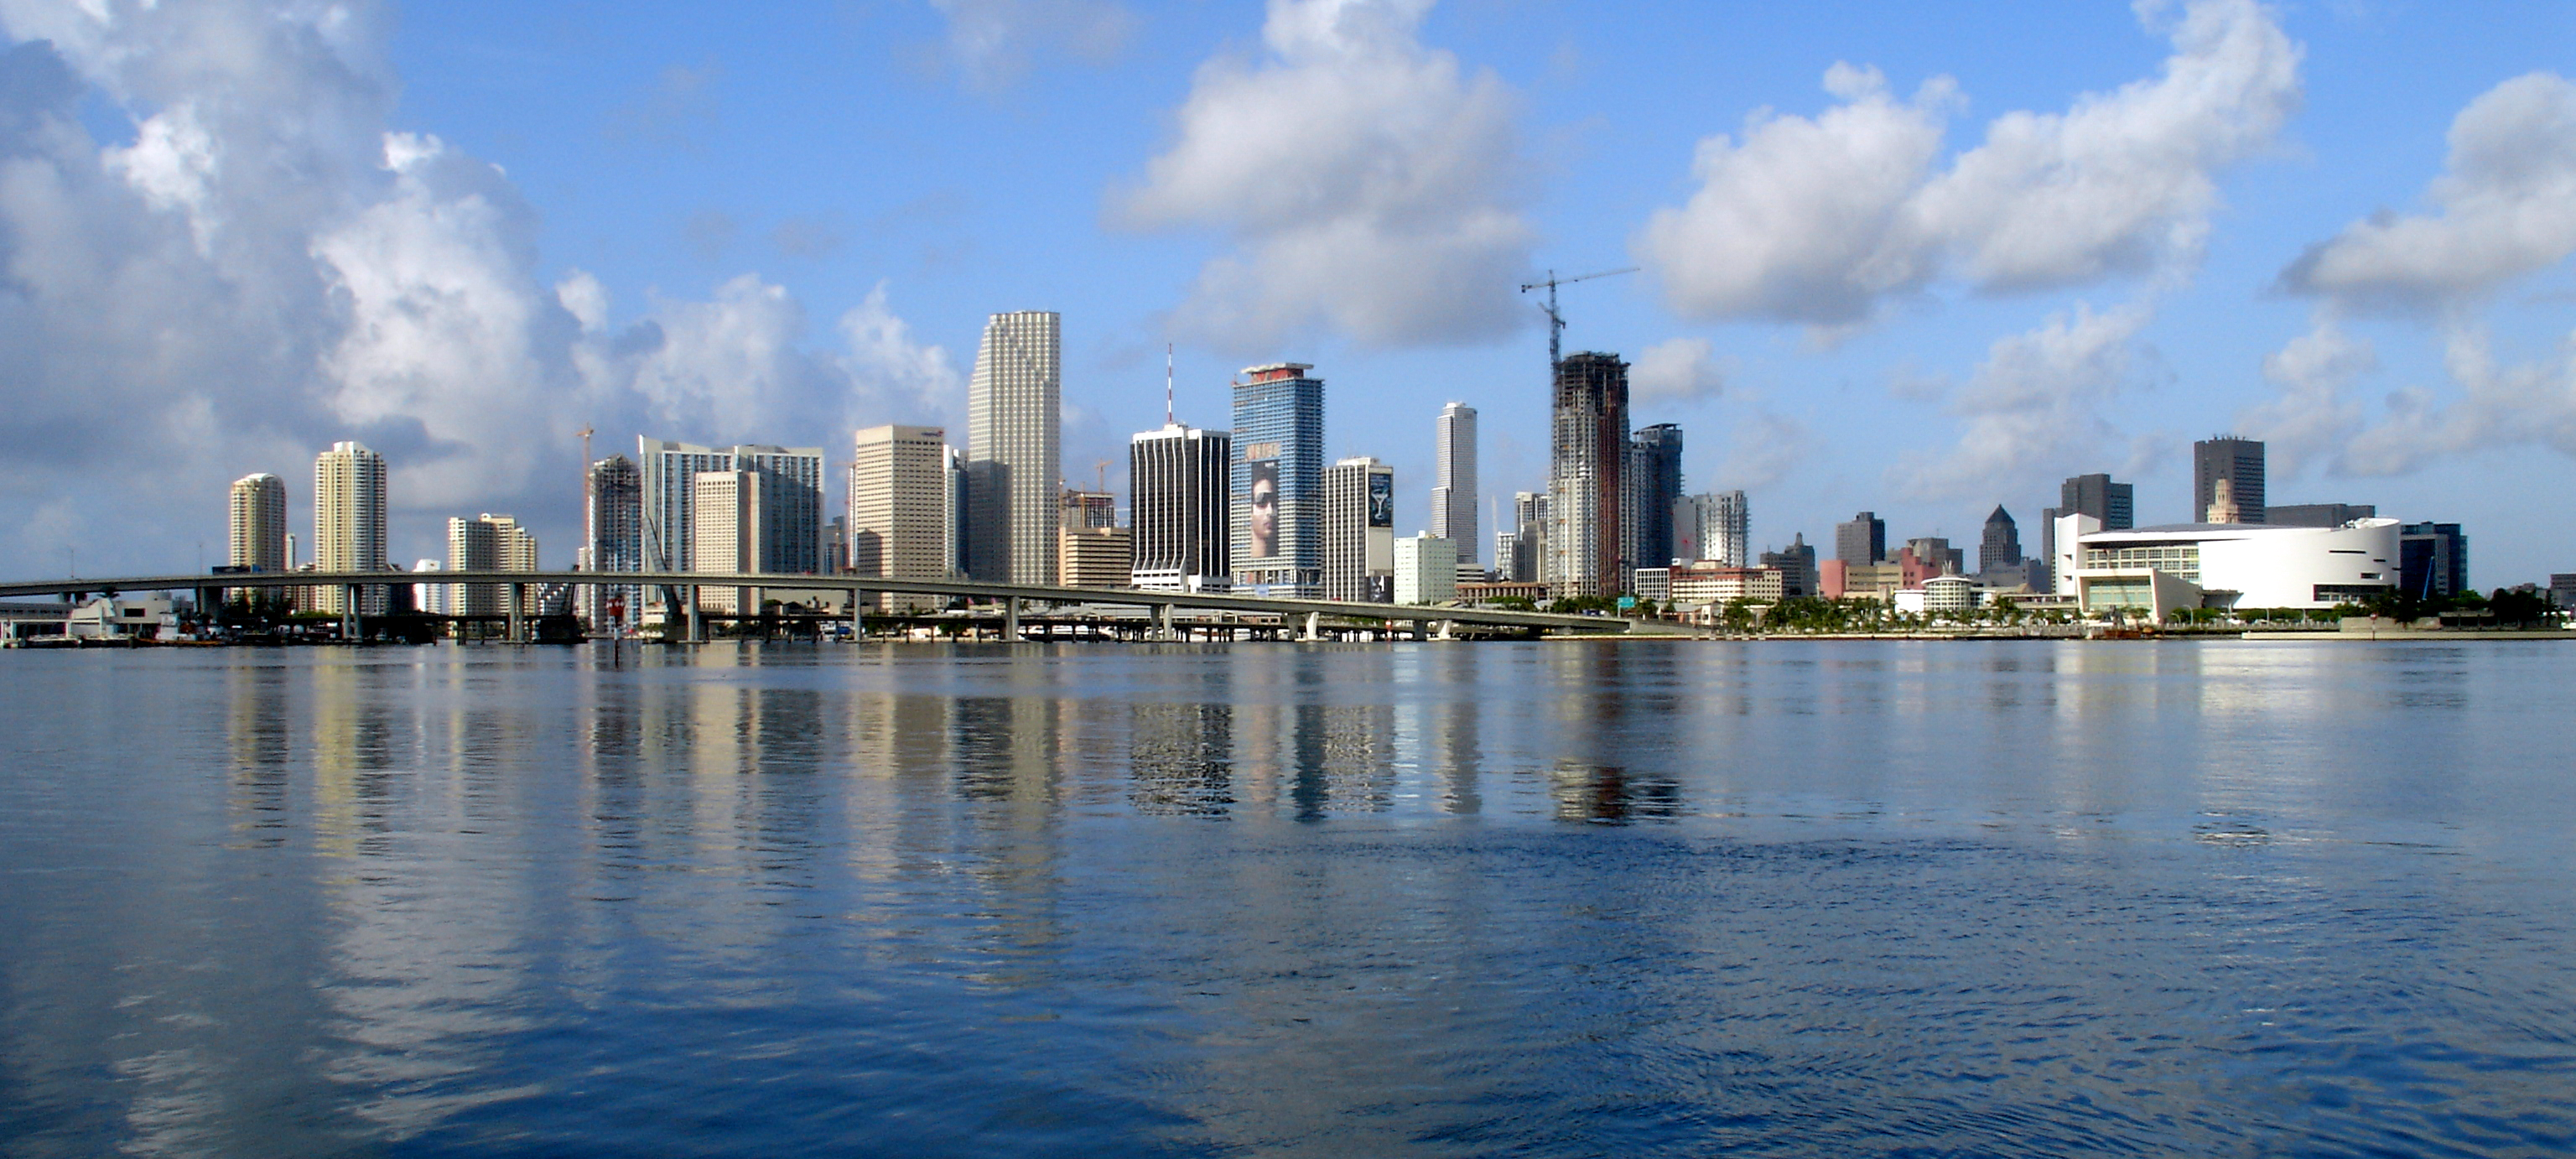 File:Miami-skyline-for-wikipedia-07-11-2007-by-tom-schaefer-miamitom.jpg - Wikimedia Commons